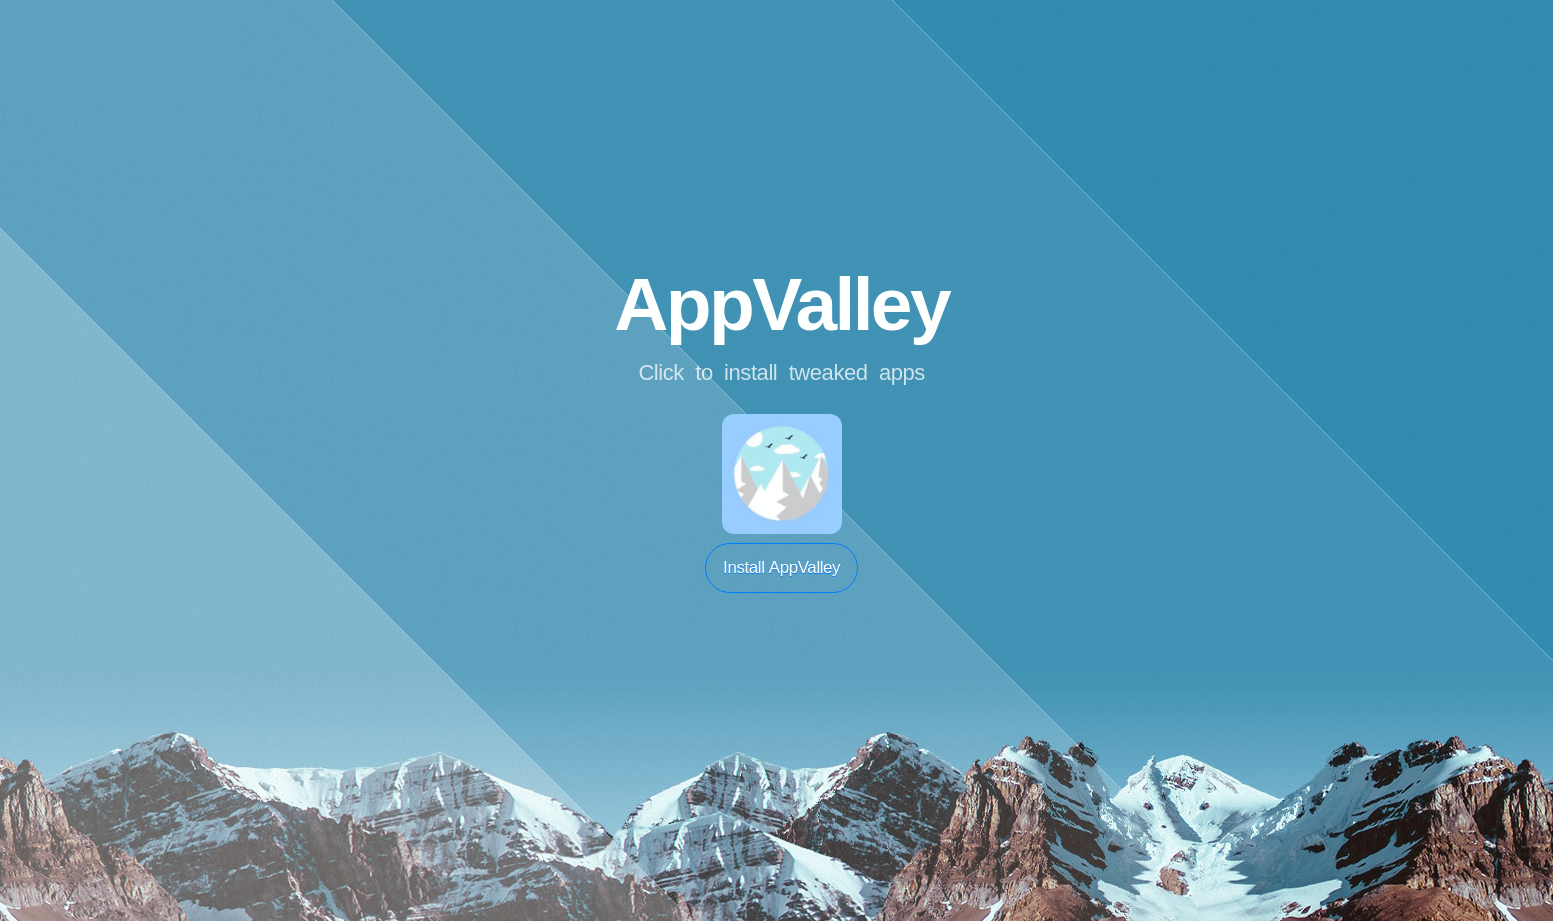 AppValley APK | Download AppValley APK on Android Devices